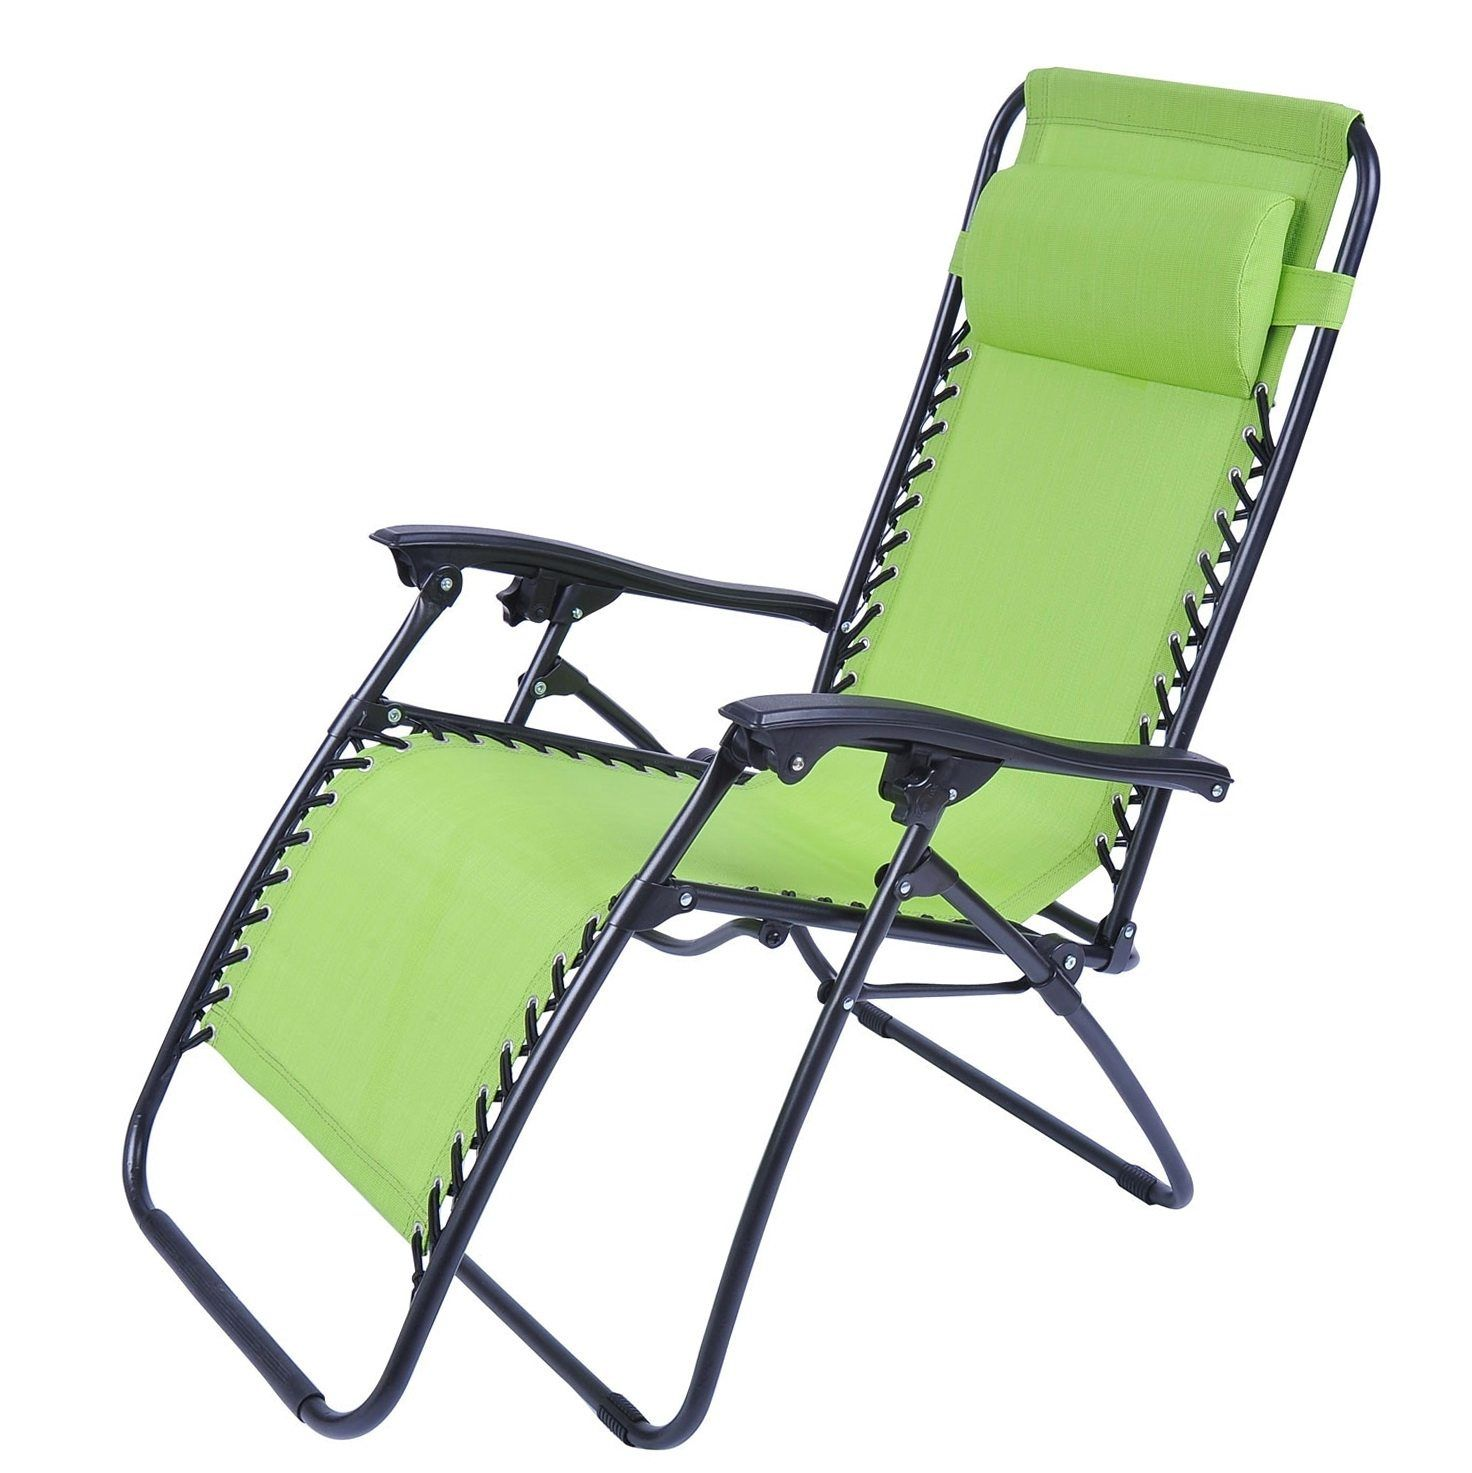 Elegant Lounge Chair Outdoor Folding Folding Chaise Lounge Chair Patio Outdoor